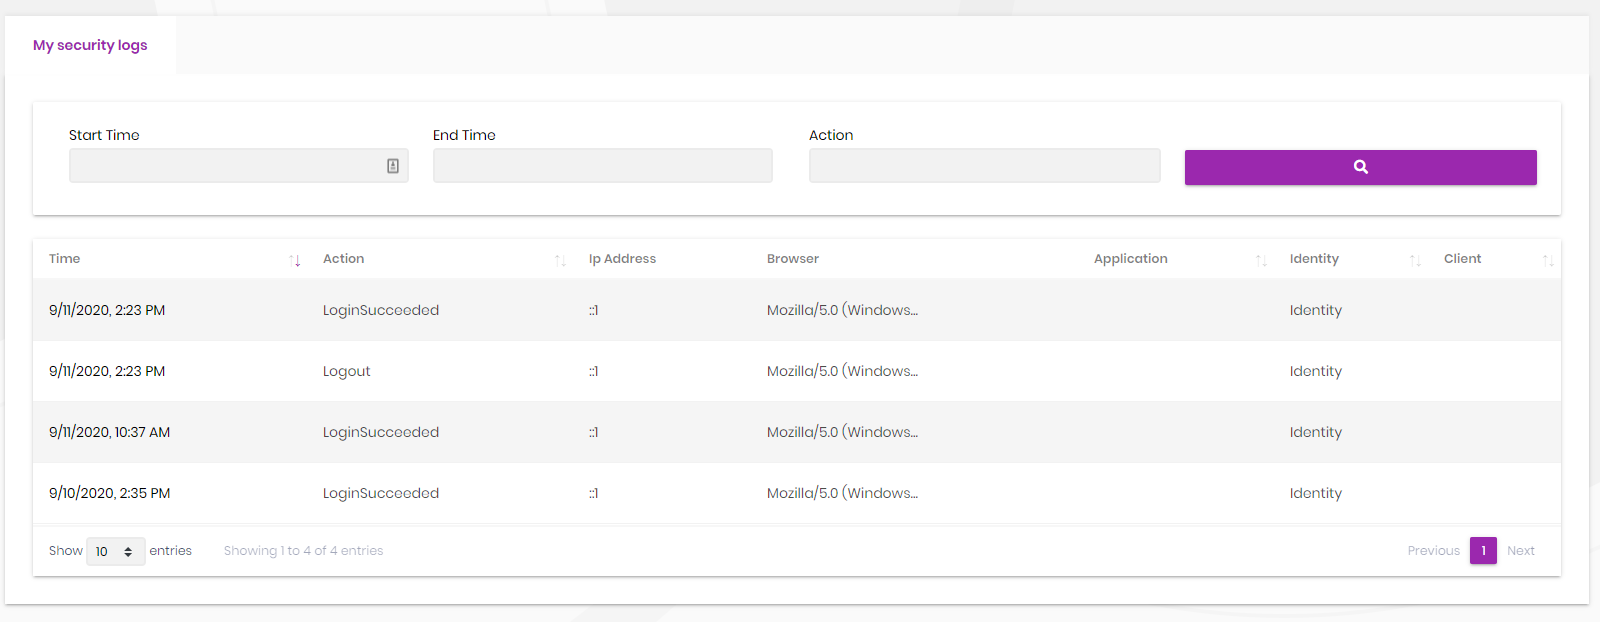 identity-security-logs-ui-my-logs-page